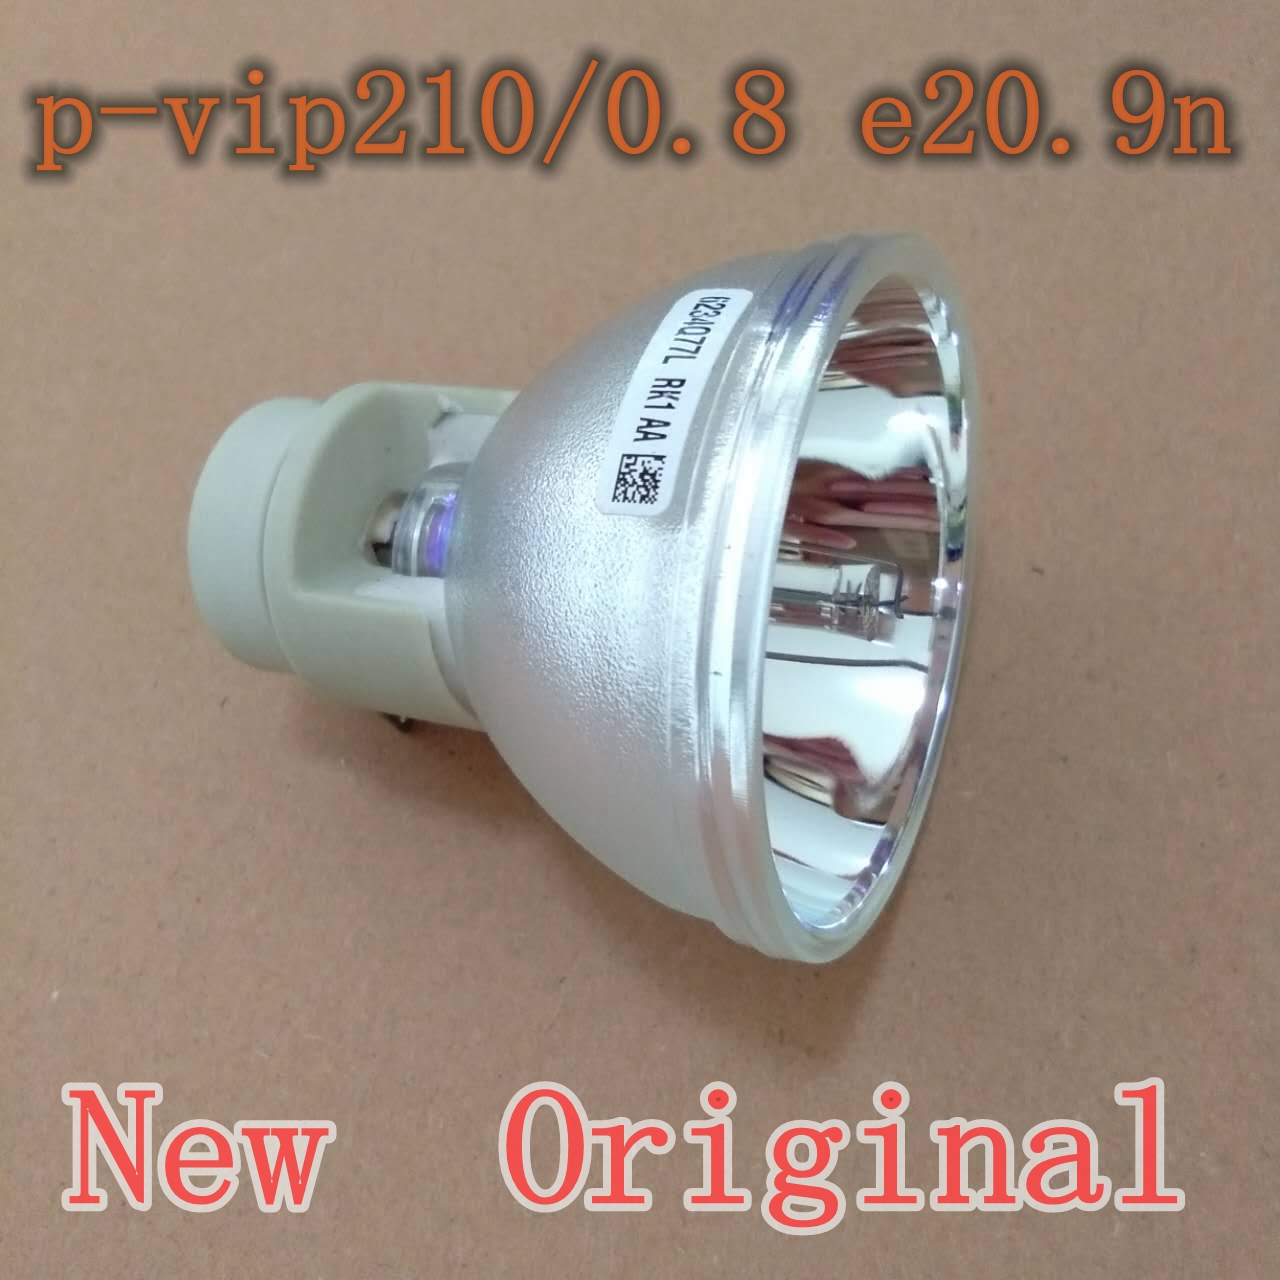 Original new projector Lamp P-VIP 210/0.8 E20.9N for BenQ MH680 TH682ST for Viewsoinc PJD7820HD for Acer E141D H6510BD P1500 benq th682st